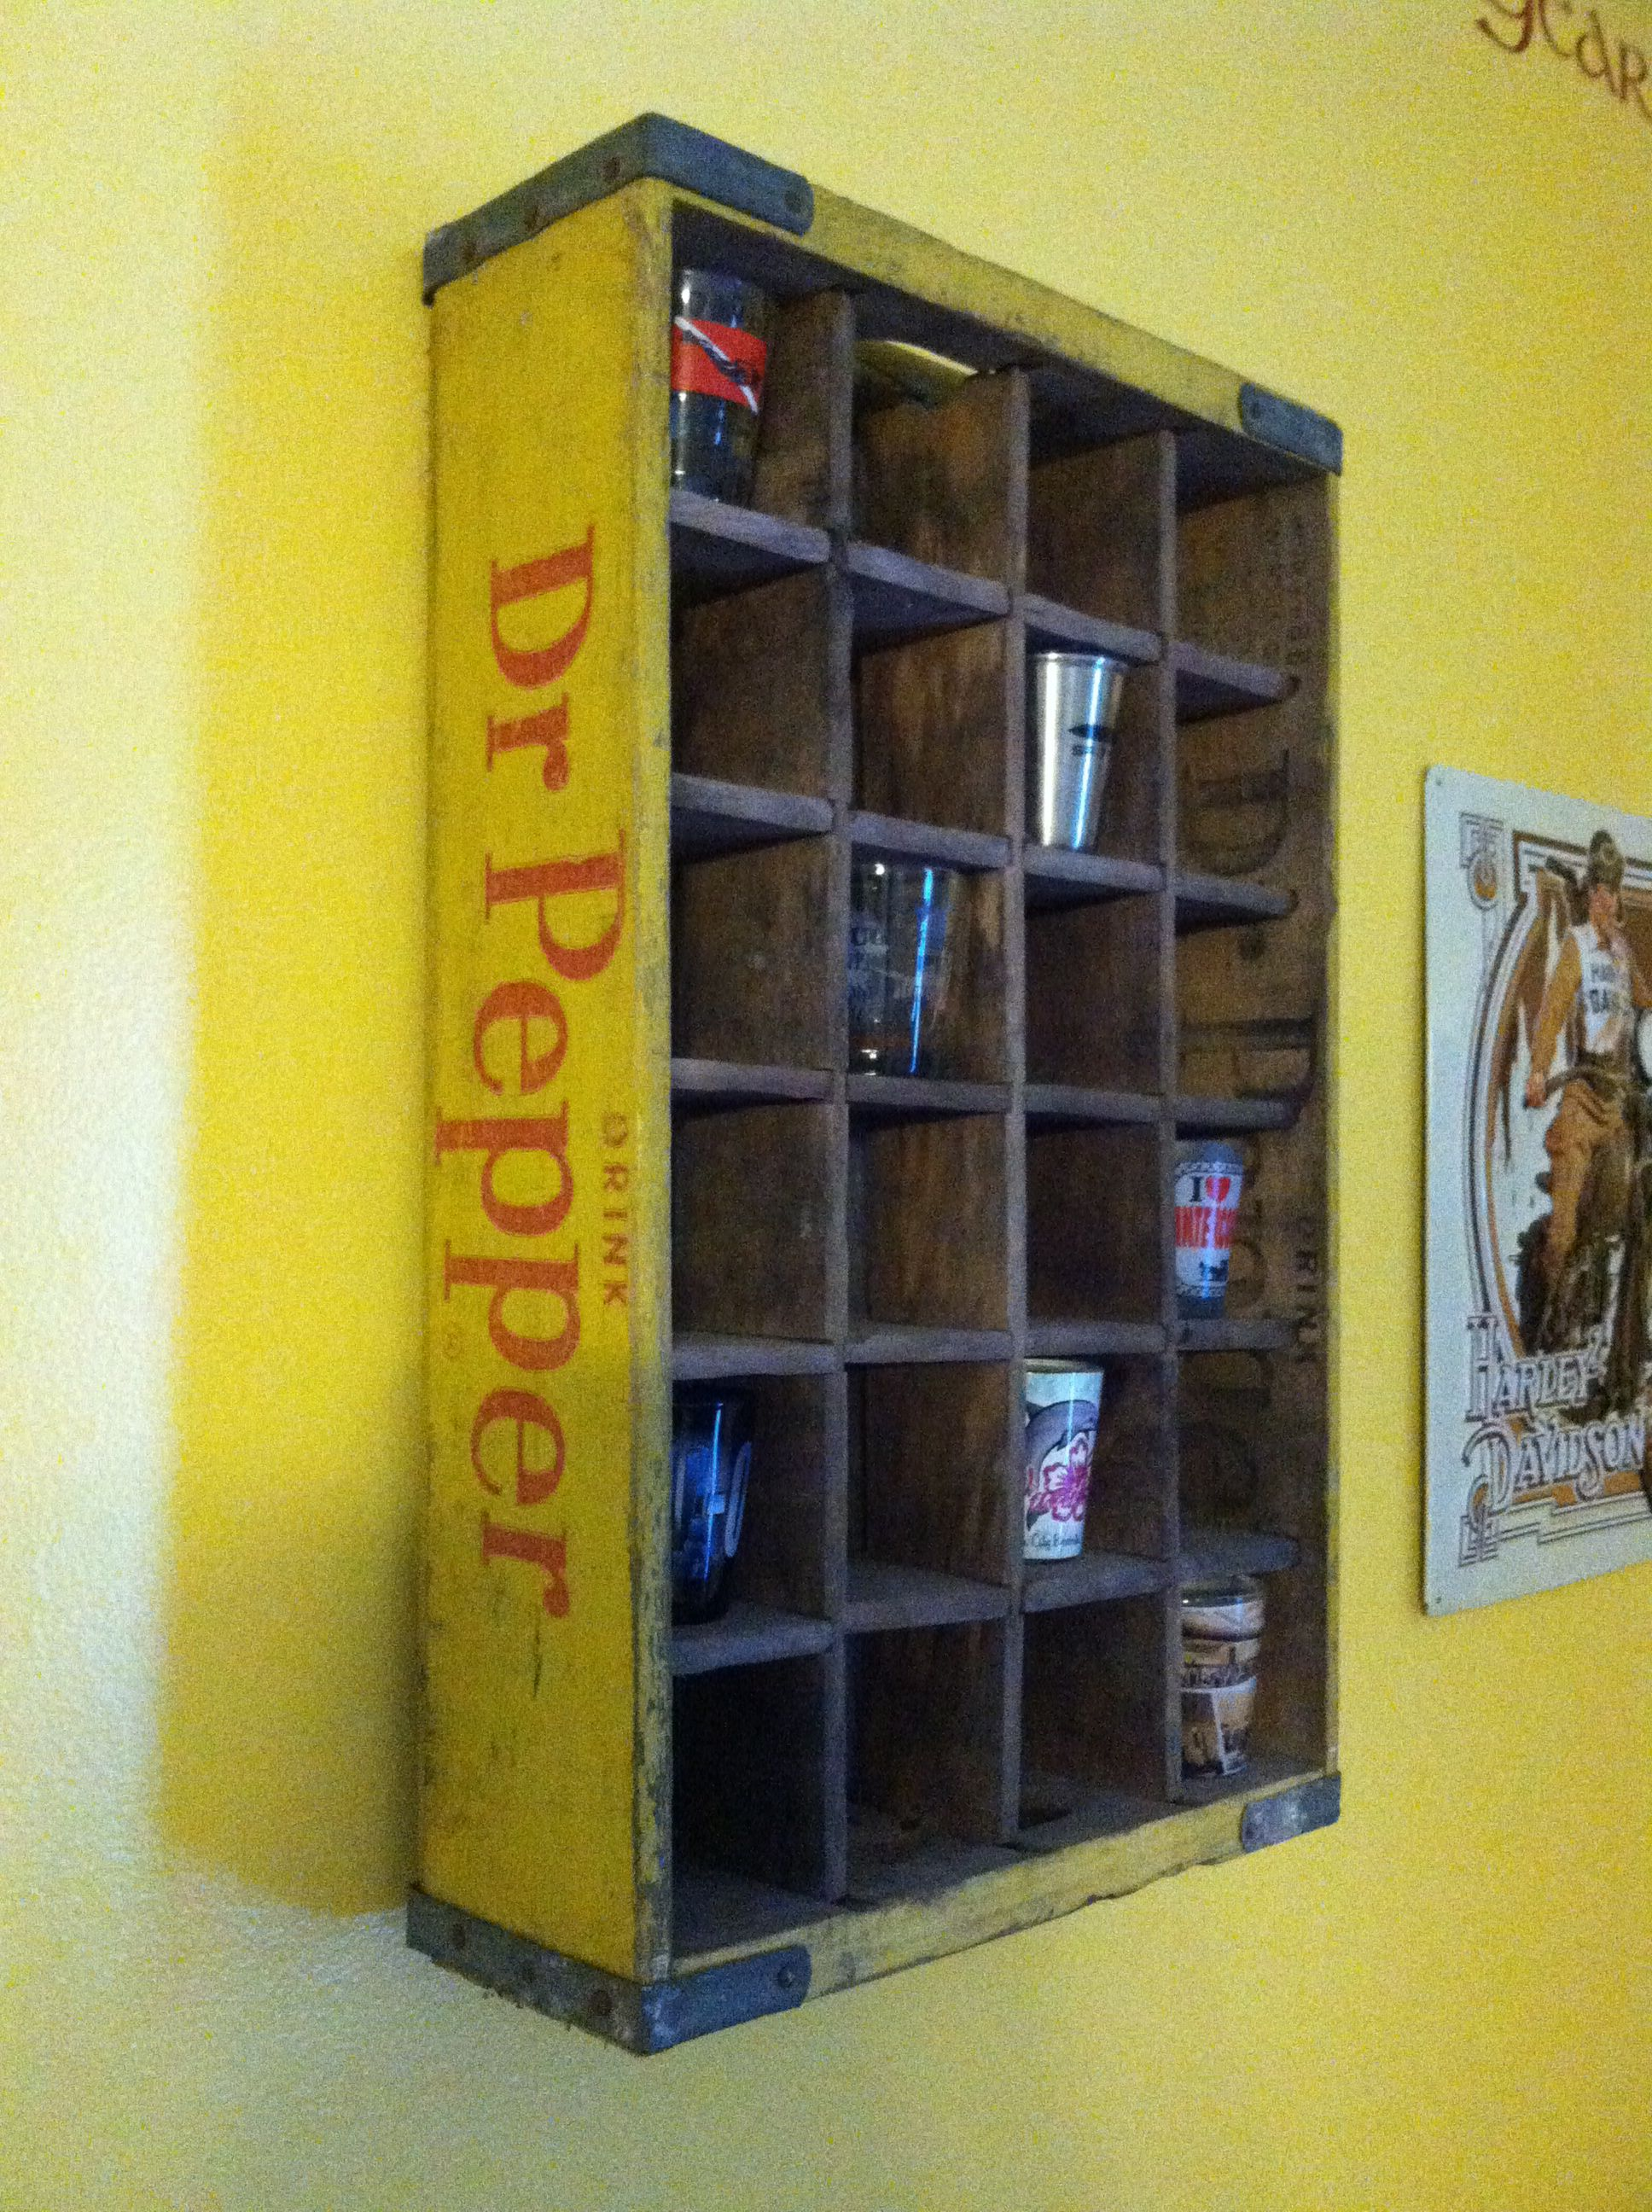 Wall Display Shelves Ideas Shot Glass Wall Display Old Wooden Coke Bottle Crate